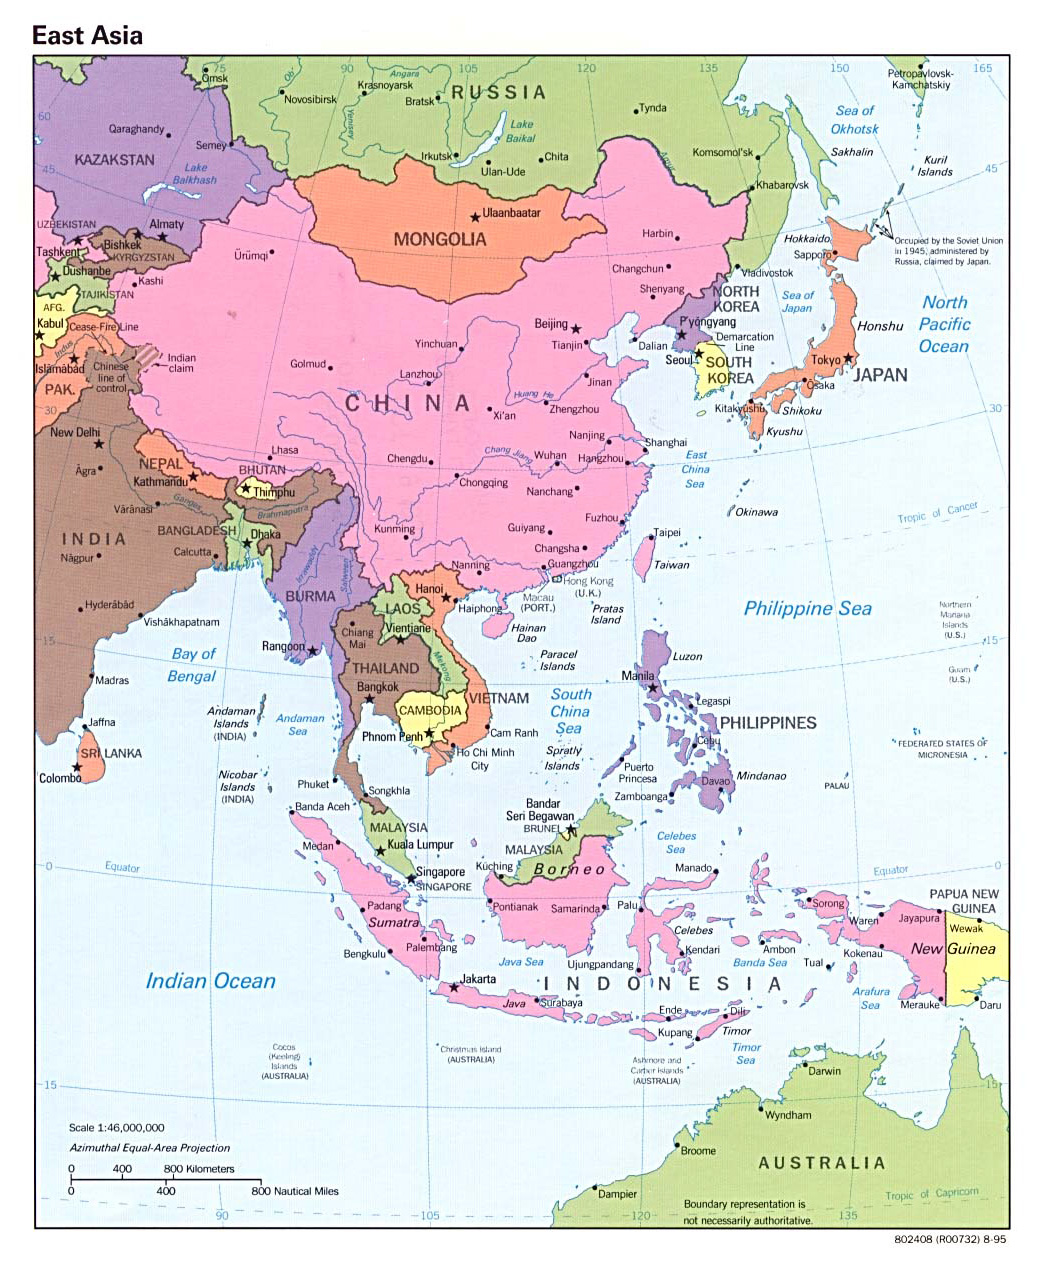 Australia Political Map With Capitals.Detailed Political Map Of East Asia With Capitals 1995 Vidiani